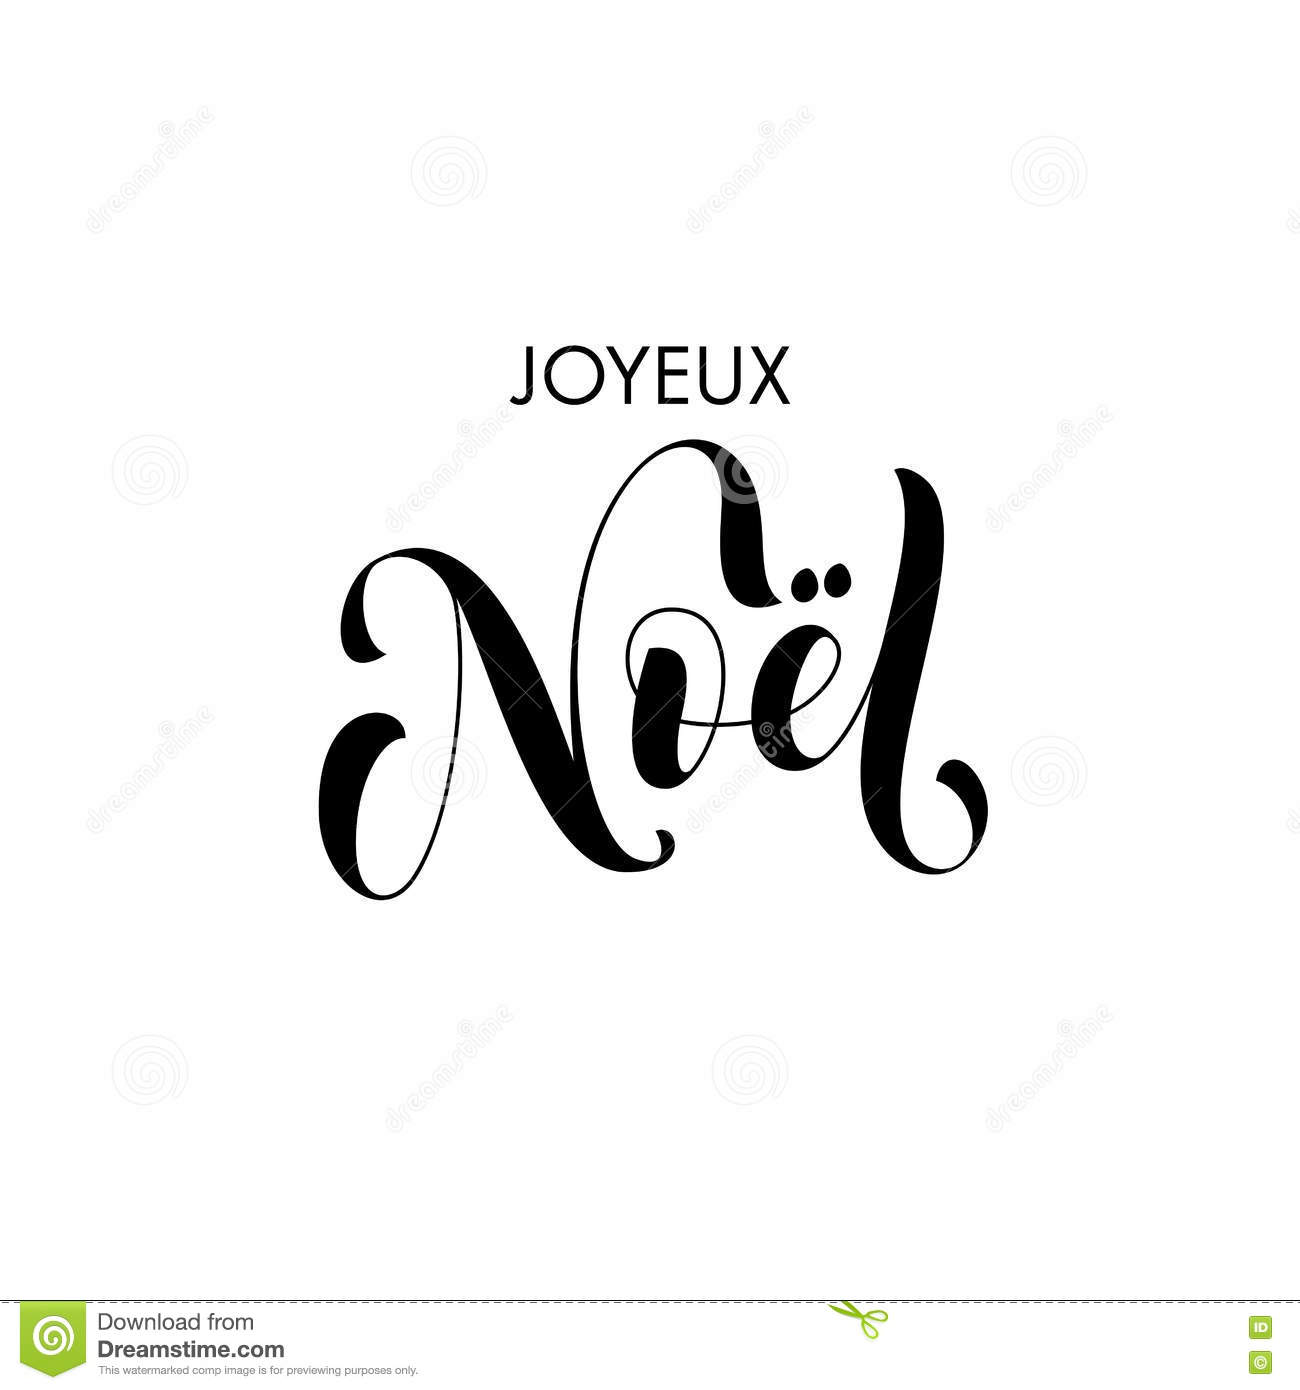 Font Kalligraphie Joyeux Noel French Merry Christmas Calligraphy Text Greeting Stock